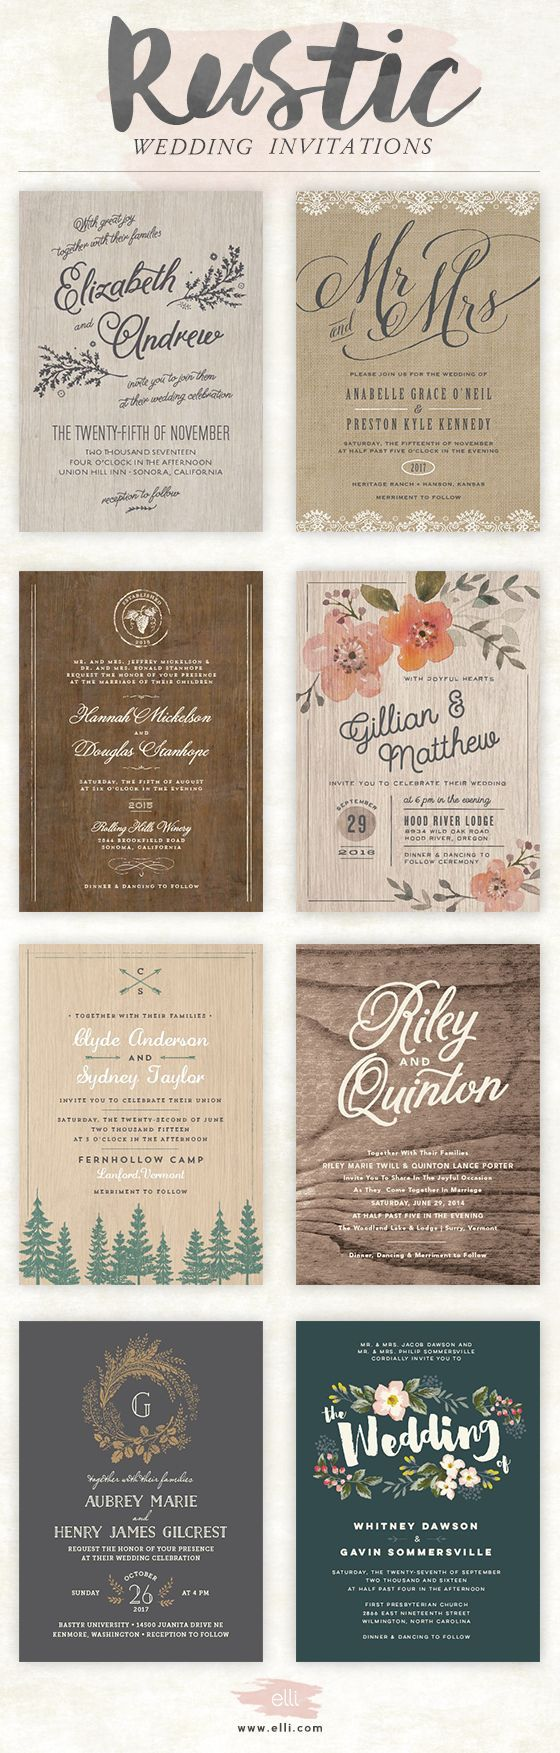 recipe themed bridal shower invitation wording%0A Beautiful rustic wedding invitations  Editable instant download templates  you can print as many as you need   wedding  invitations  vinewedding    Pinterest